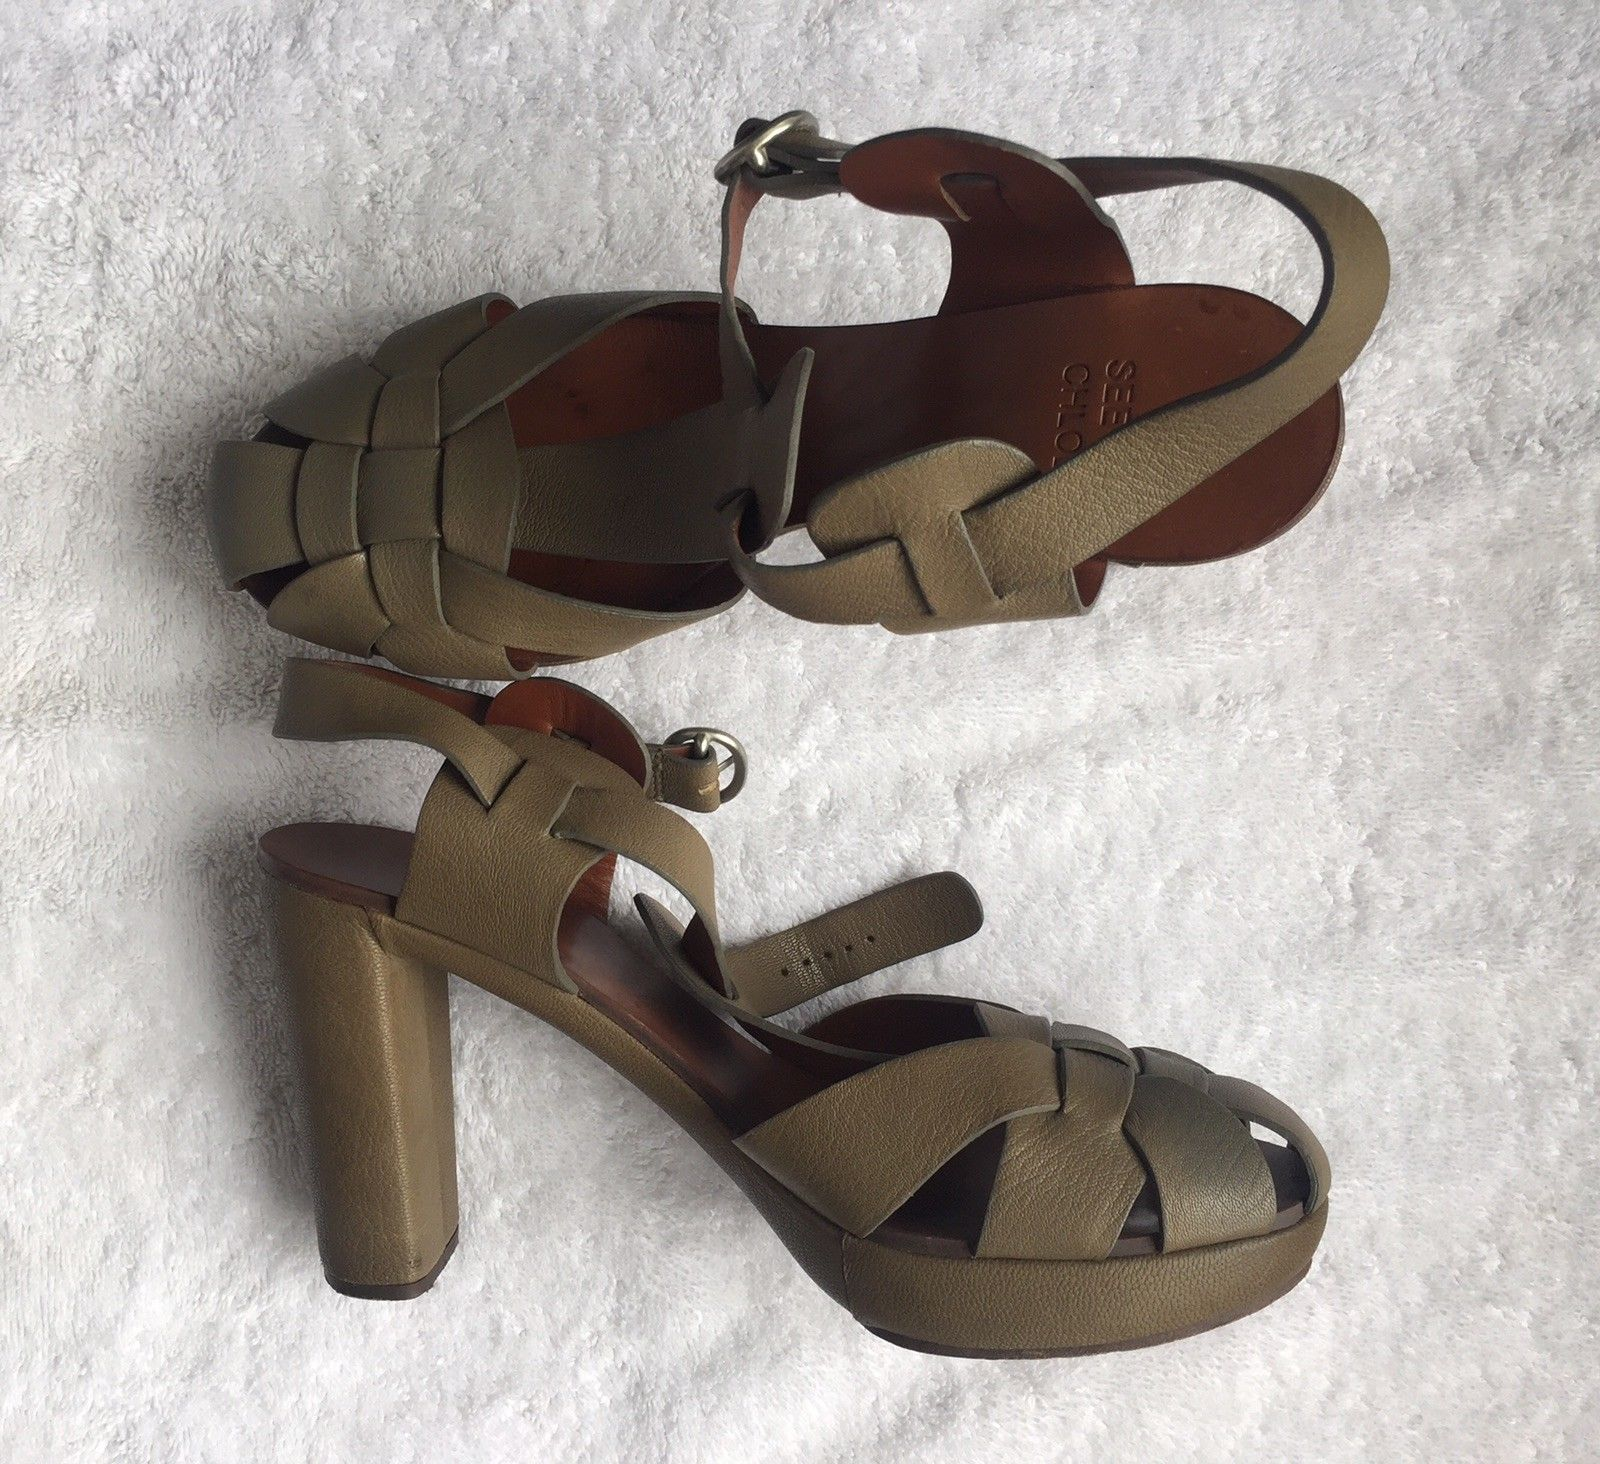 5f13dfefb95 See By Chloe Green Leather Sandals with wooden heel